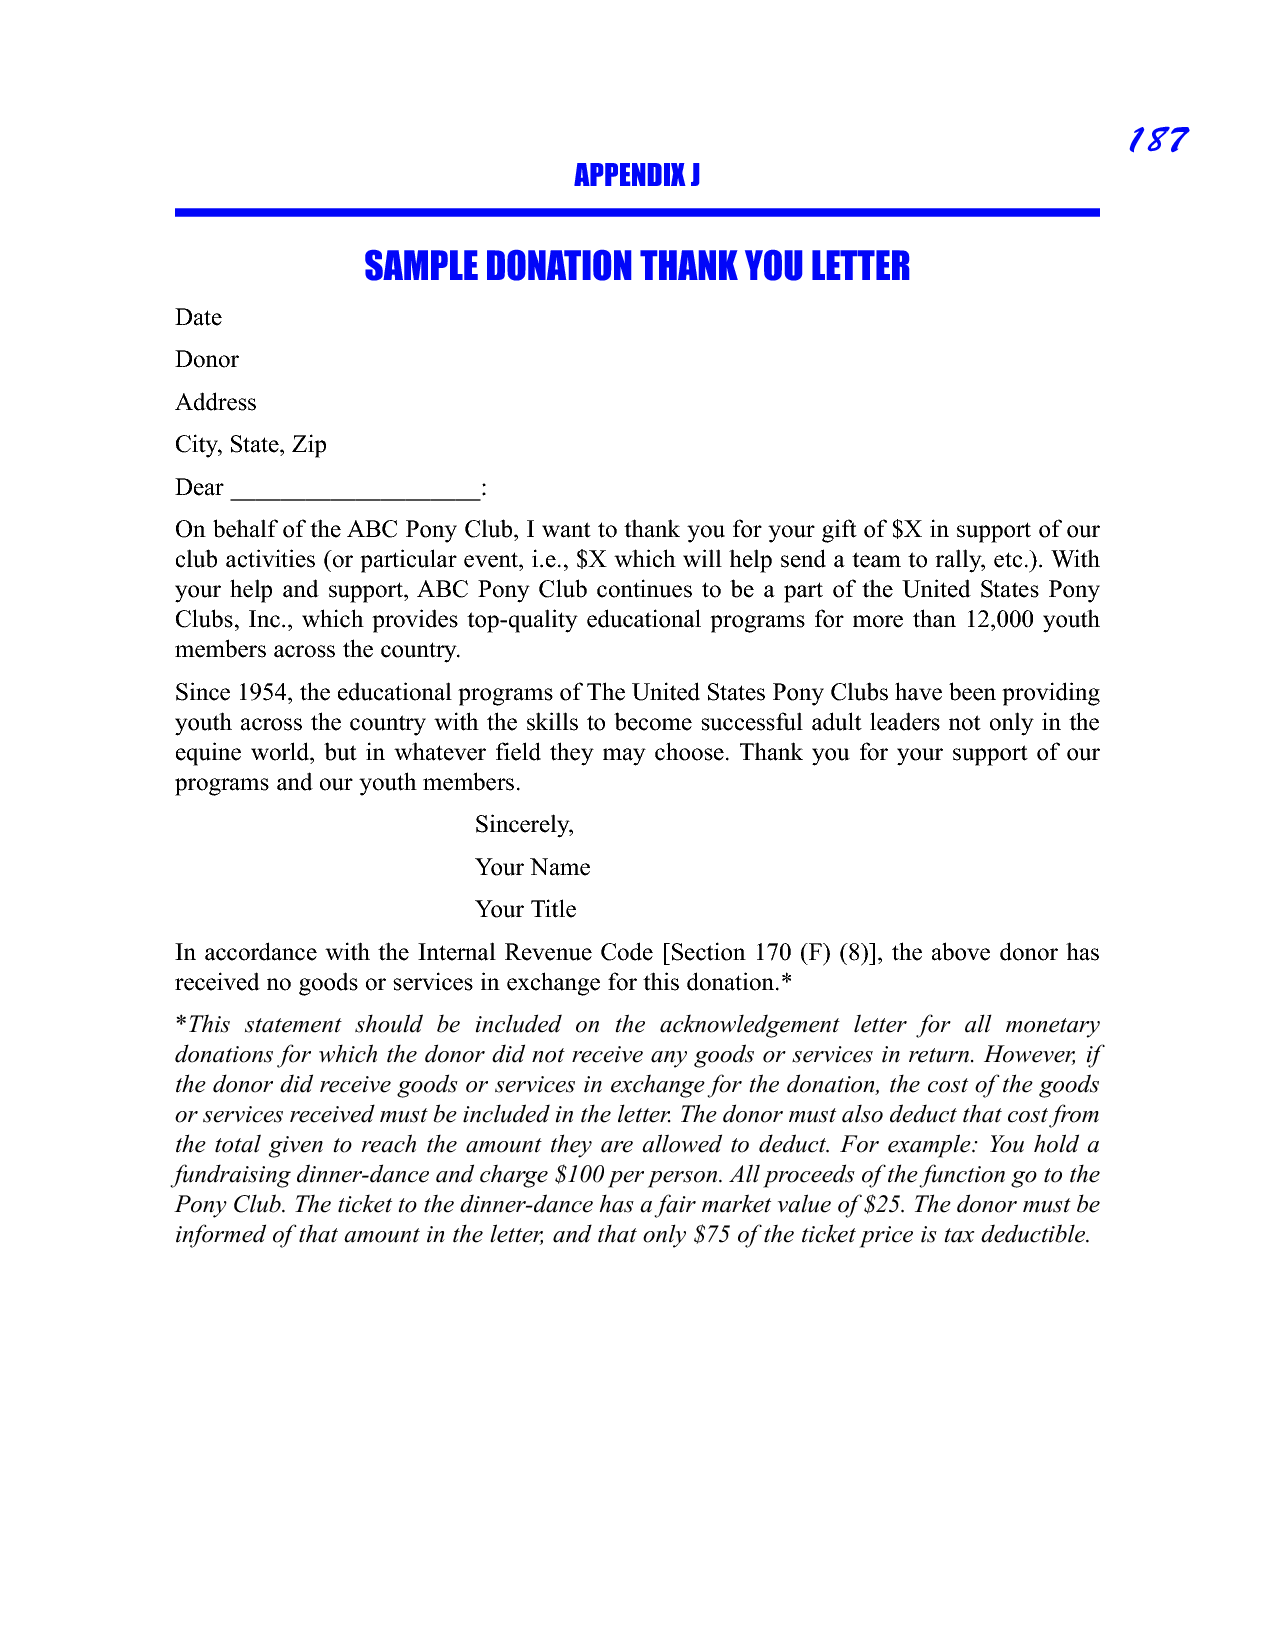 thank you letter for donation sample thank you letter  thank